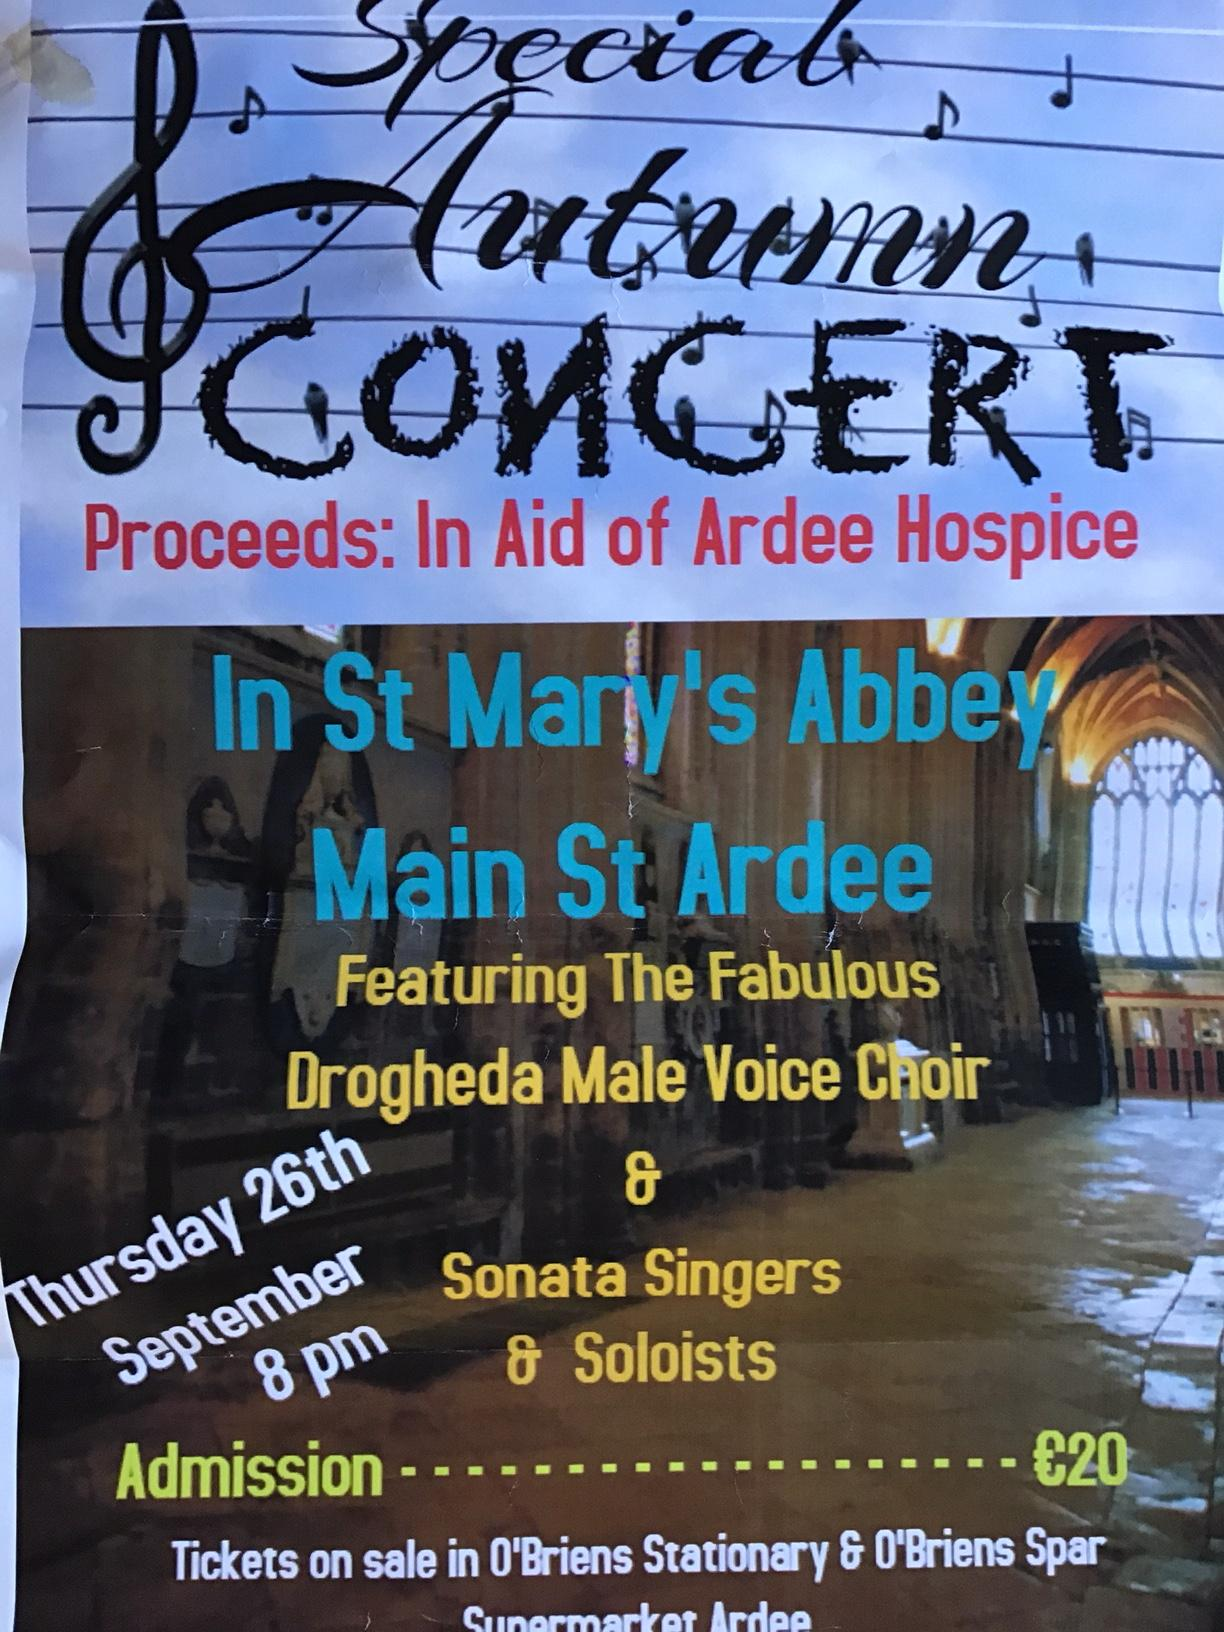 http://drogheda.armagh.anglican.org/wp-content/uploads/2019/09/Concert-Sept19.jpg